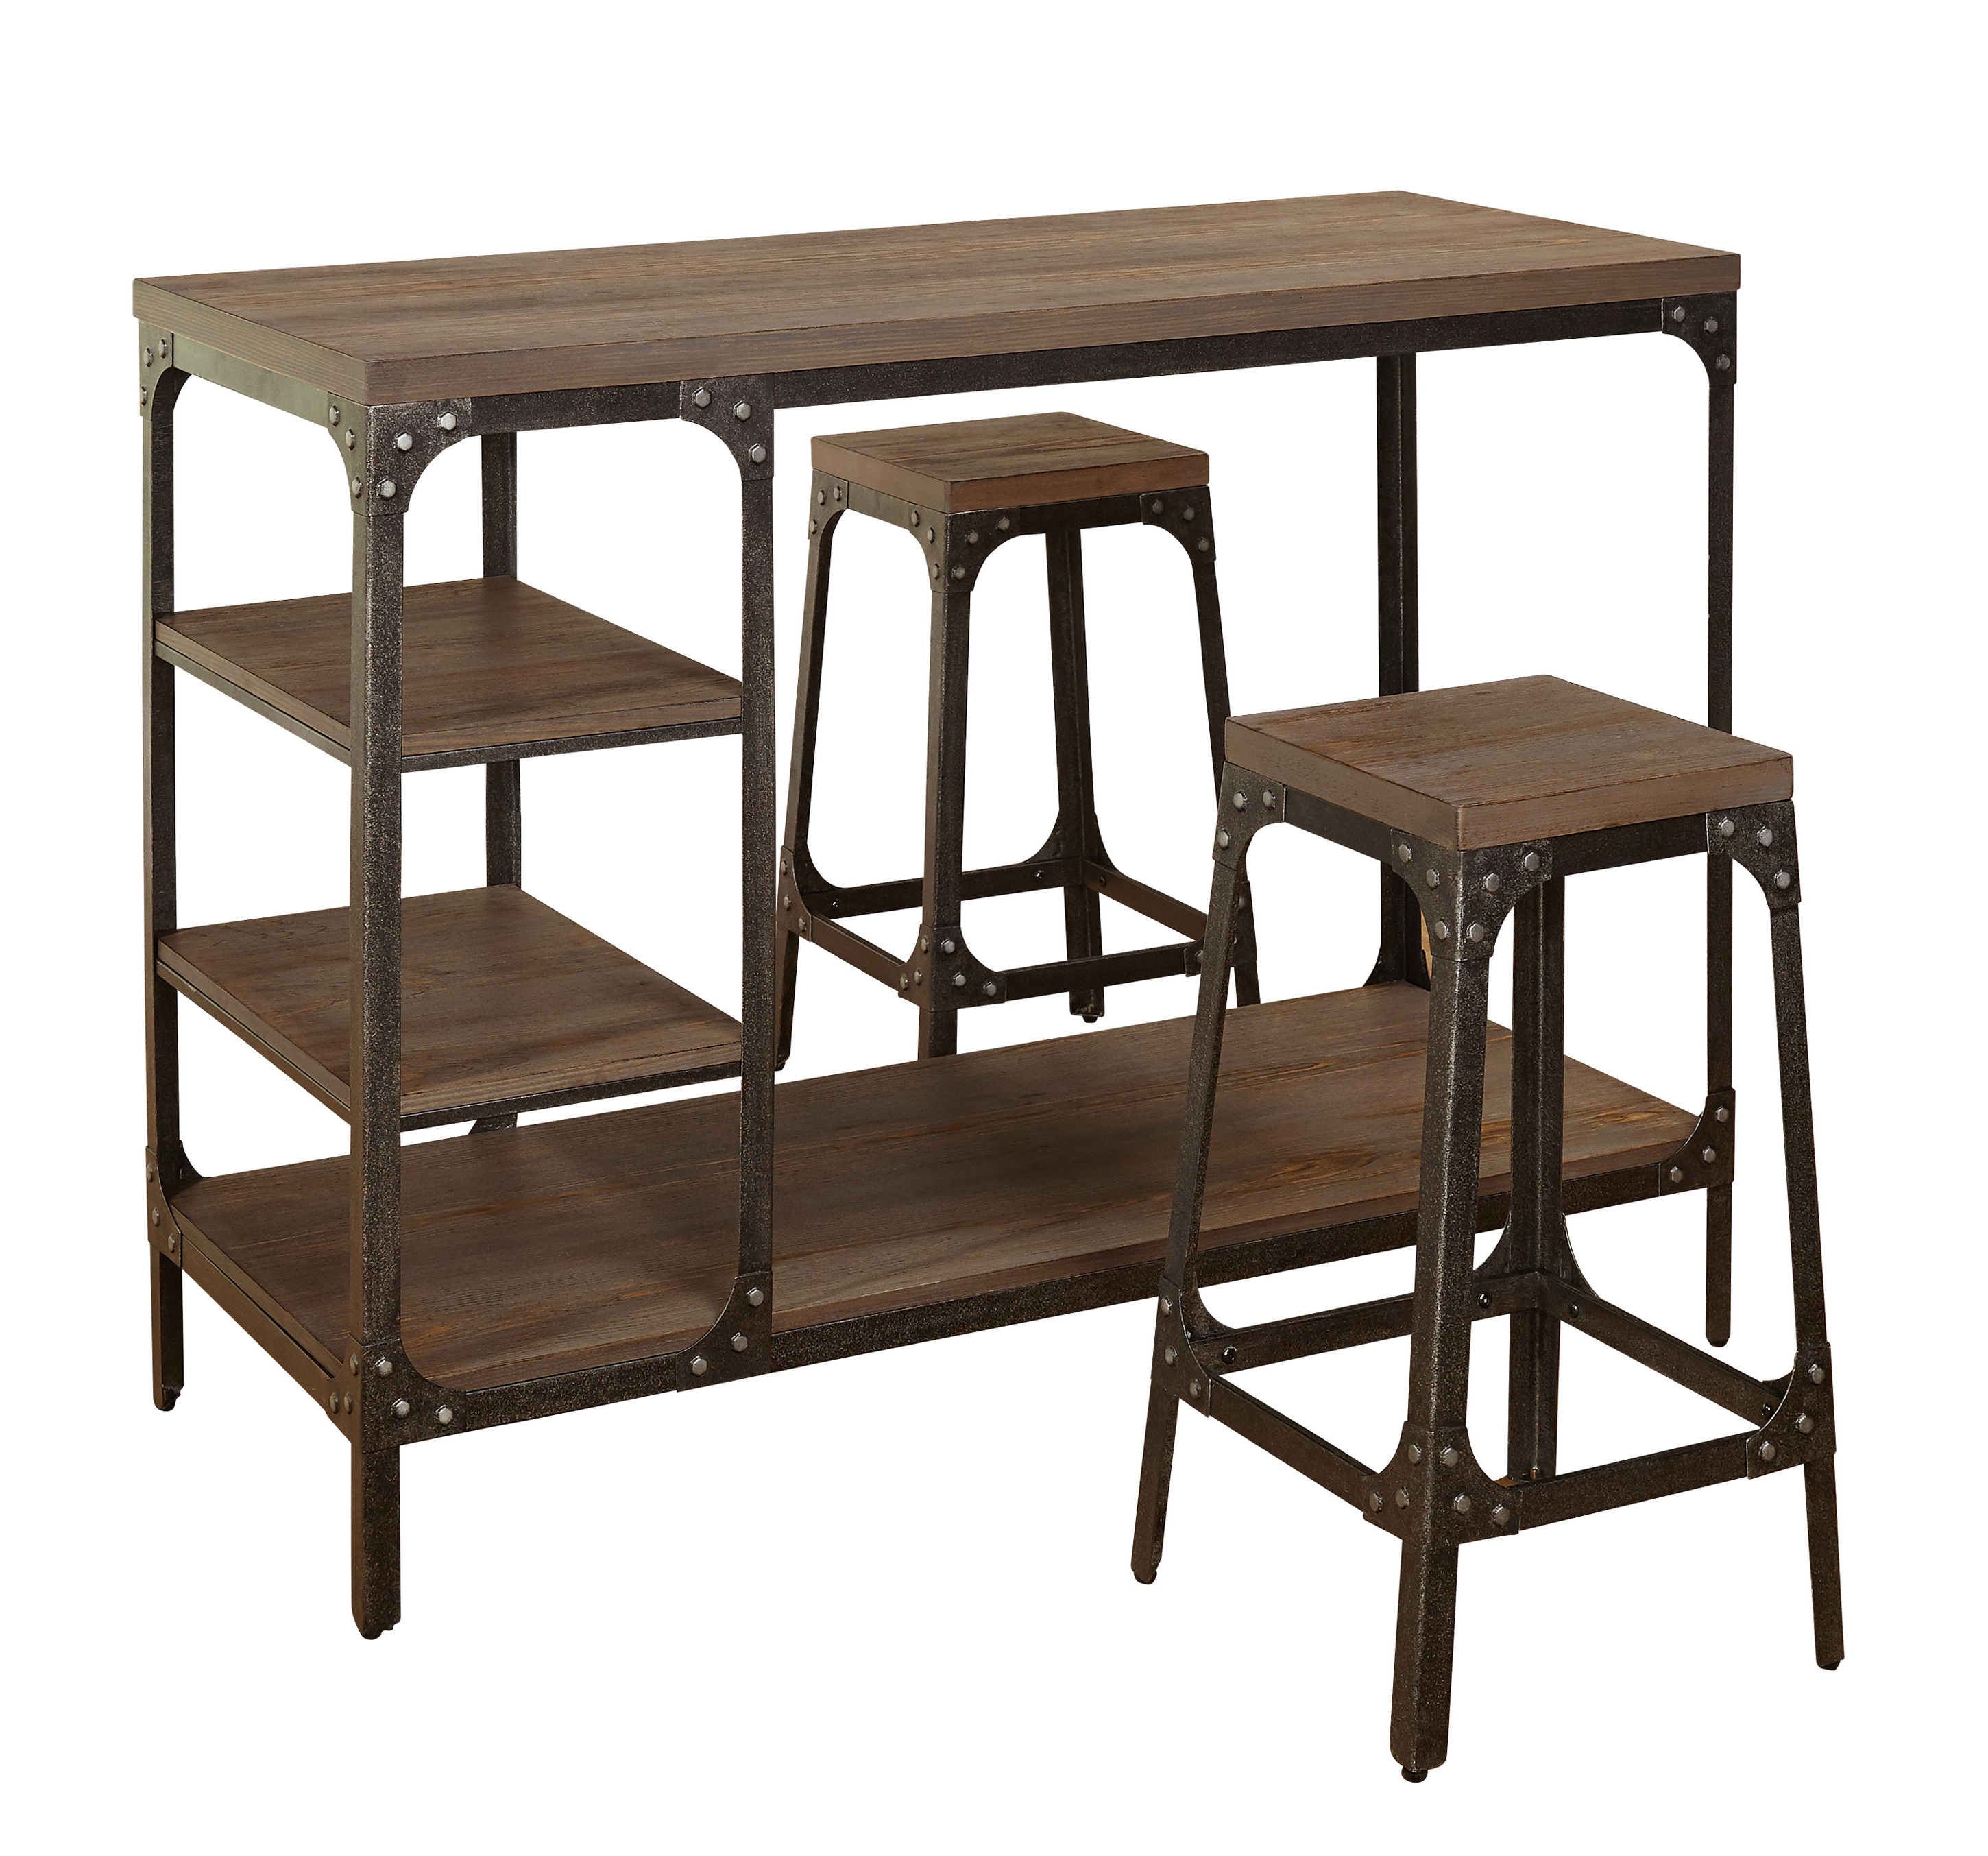 Debby Small Space 3 Piece Dining Sets Inside Most Recent Terence 3 Piece Breakfast Nook Dining Set (View 16 of 20)